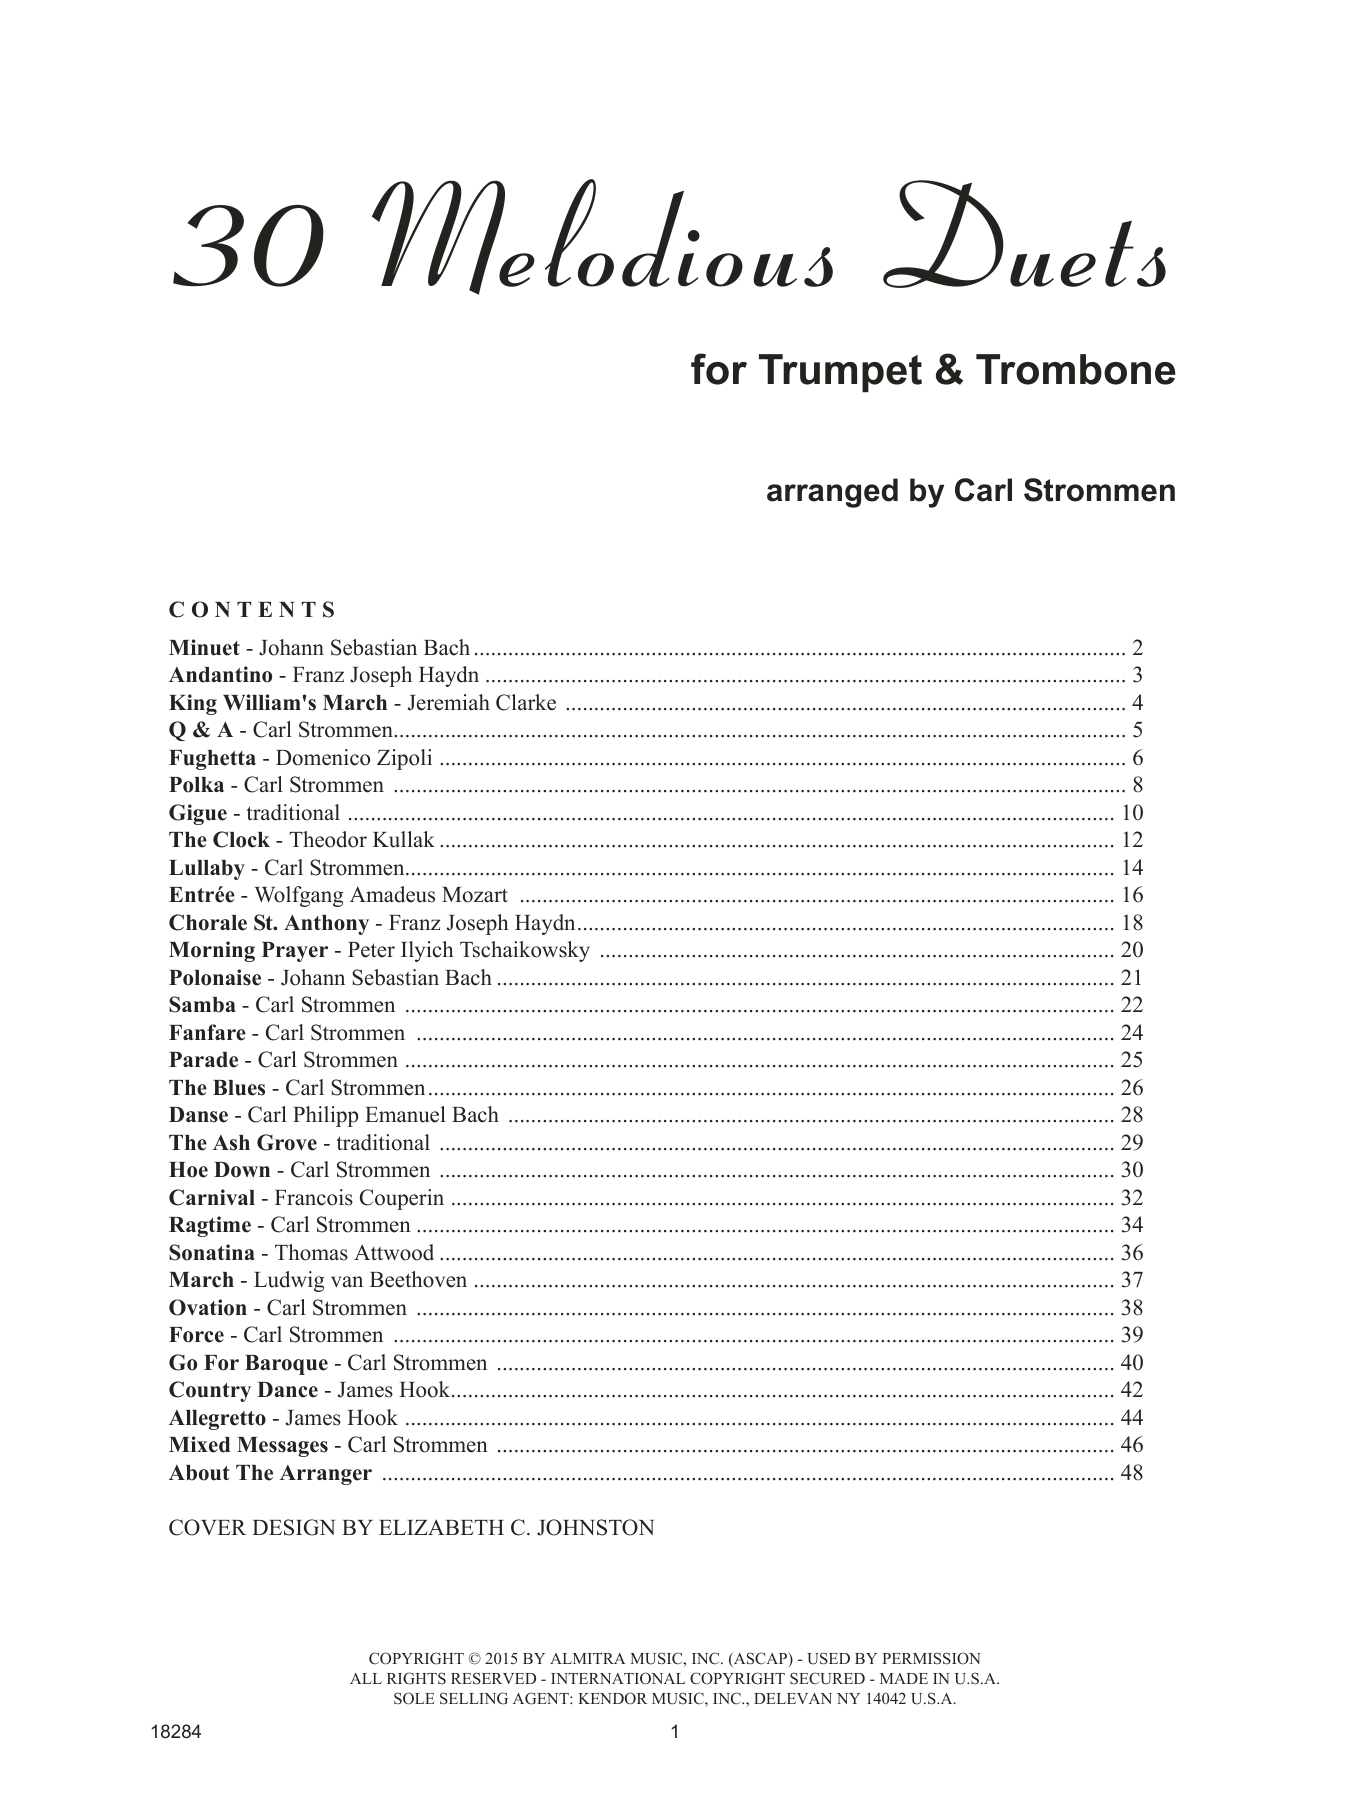 Carl Strommen 30 Melodious Duets (Trumpet & Trombone) sheet music notes and chords